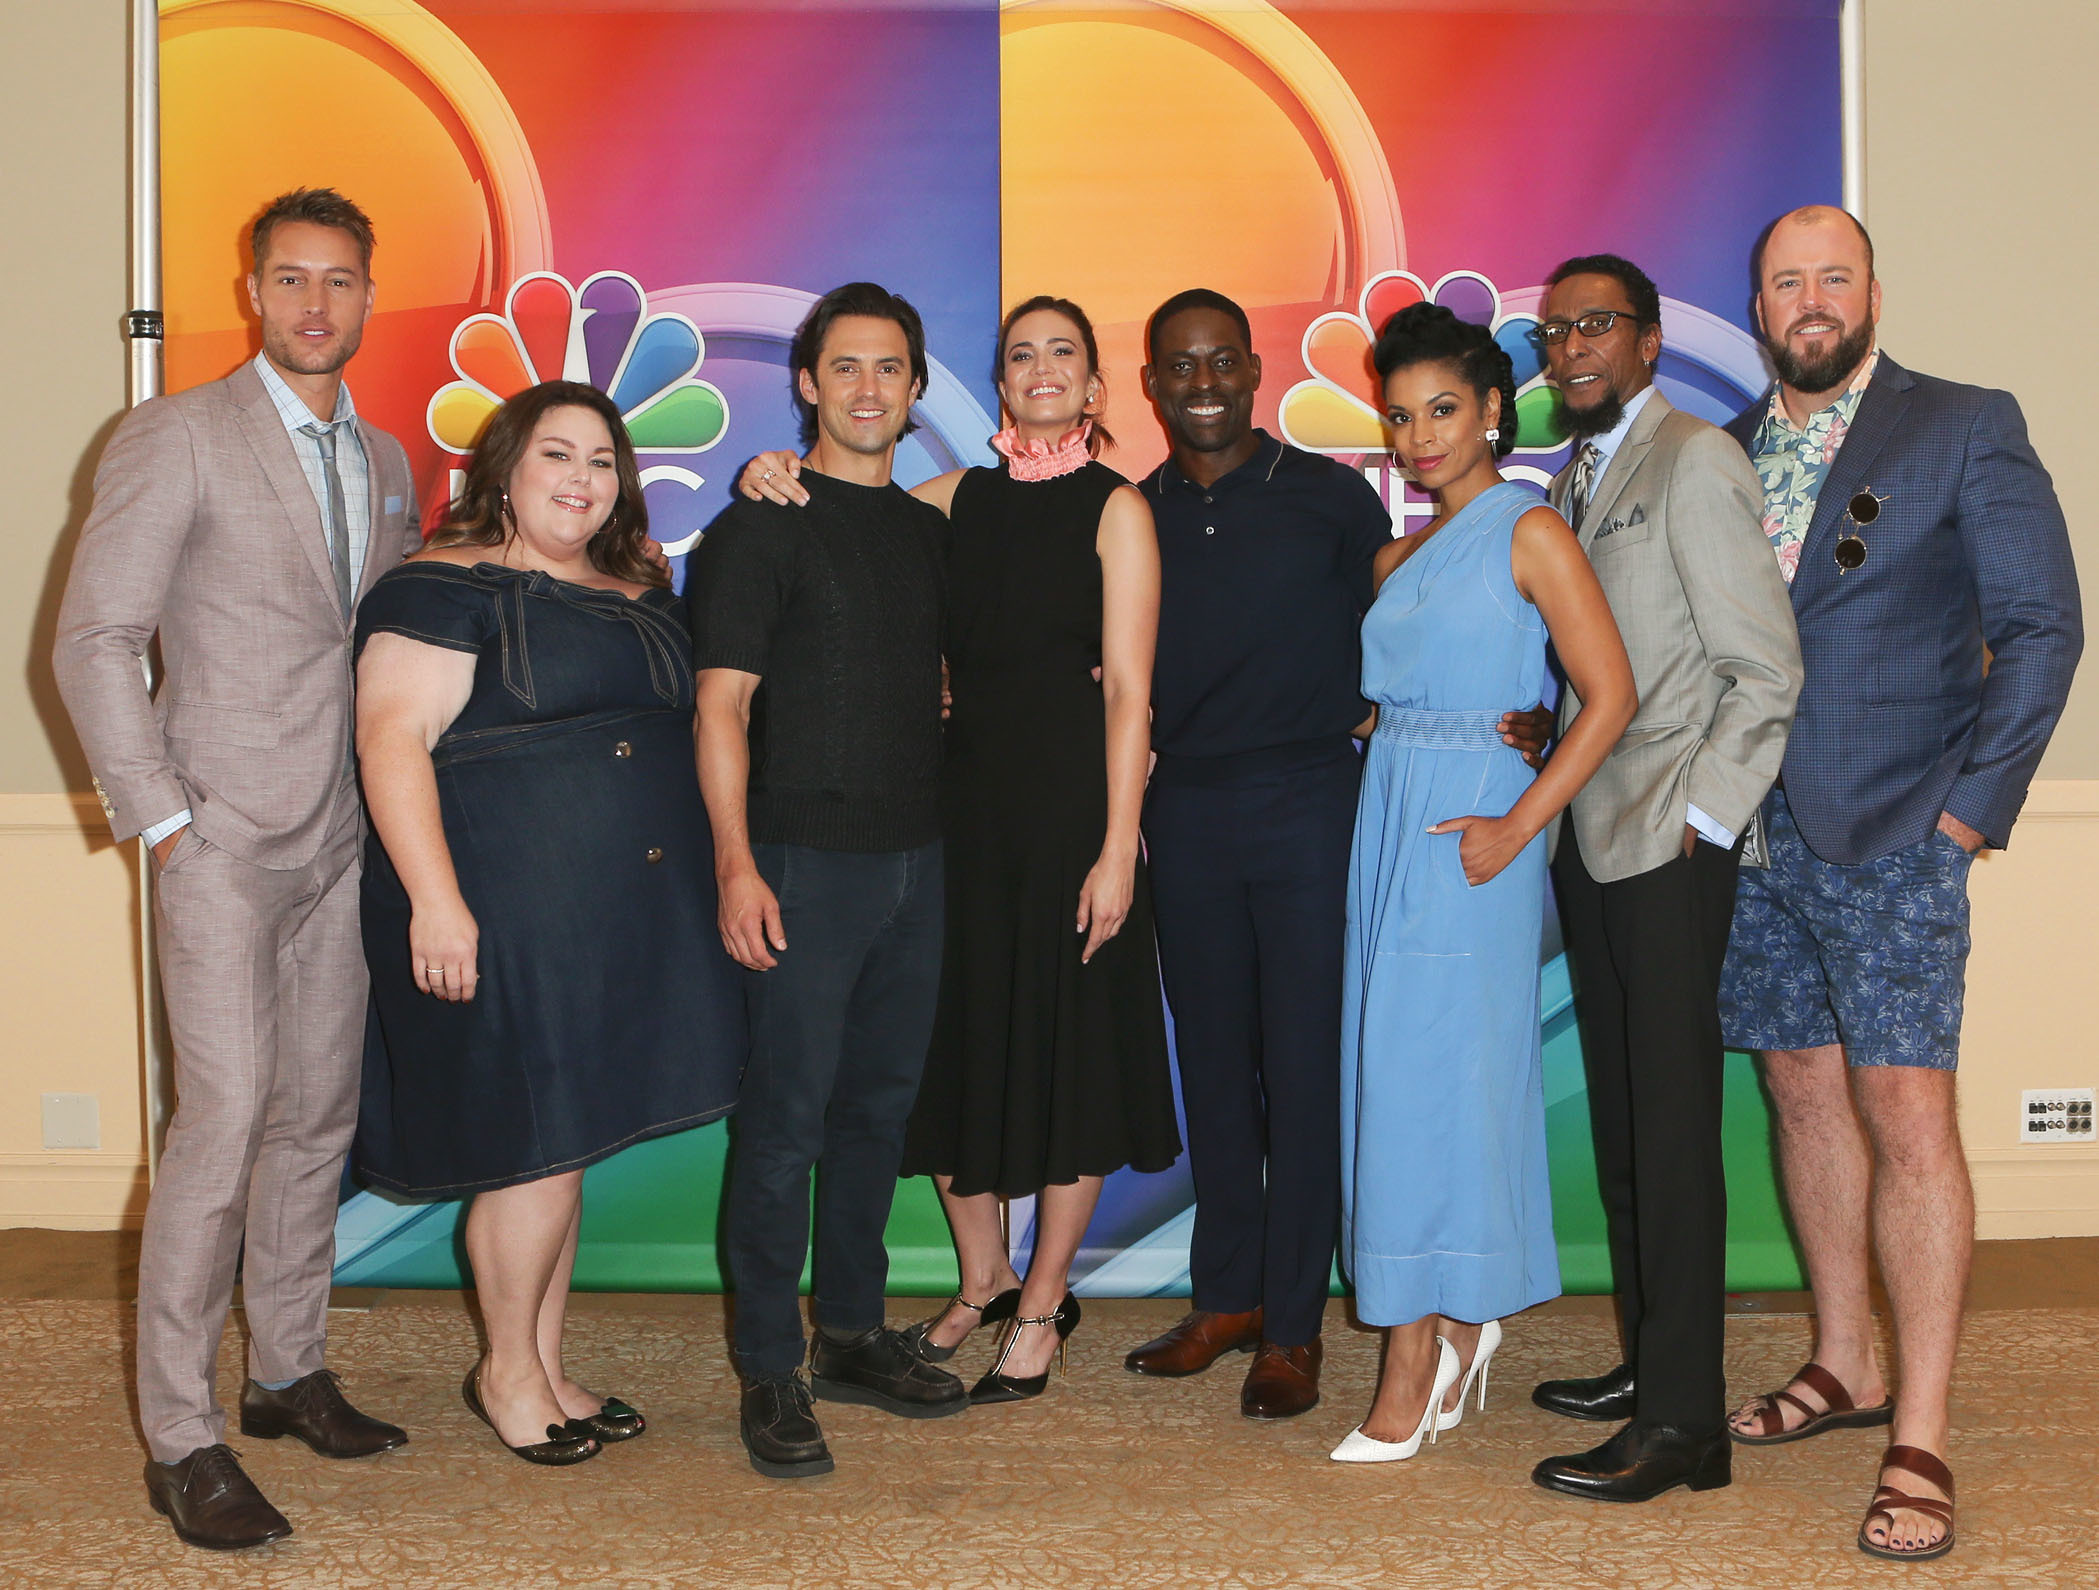 Justin Hartley, Chrissy Metz, Milo Ventimiglia, Mandy Moore, Sterling K. Brown, Susan Kelechi Watson, Ron Cephas Jones and Chris Sullivan attend the TCA Summer Press Tour in Los Angeles on Aug. 3, 2017.